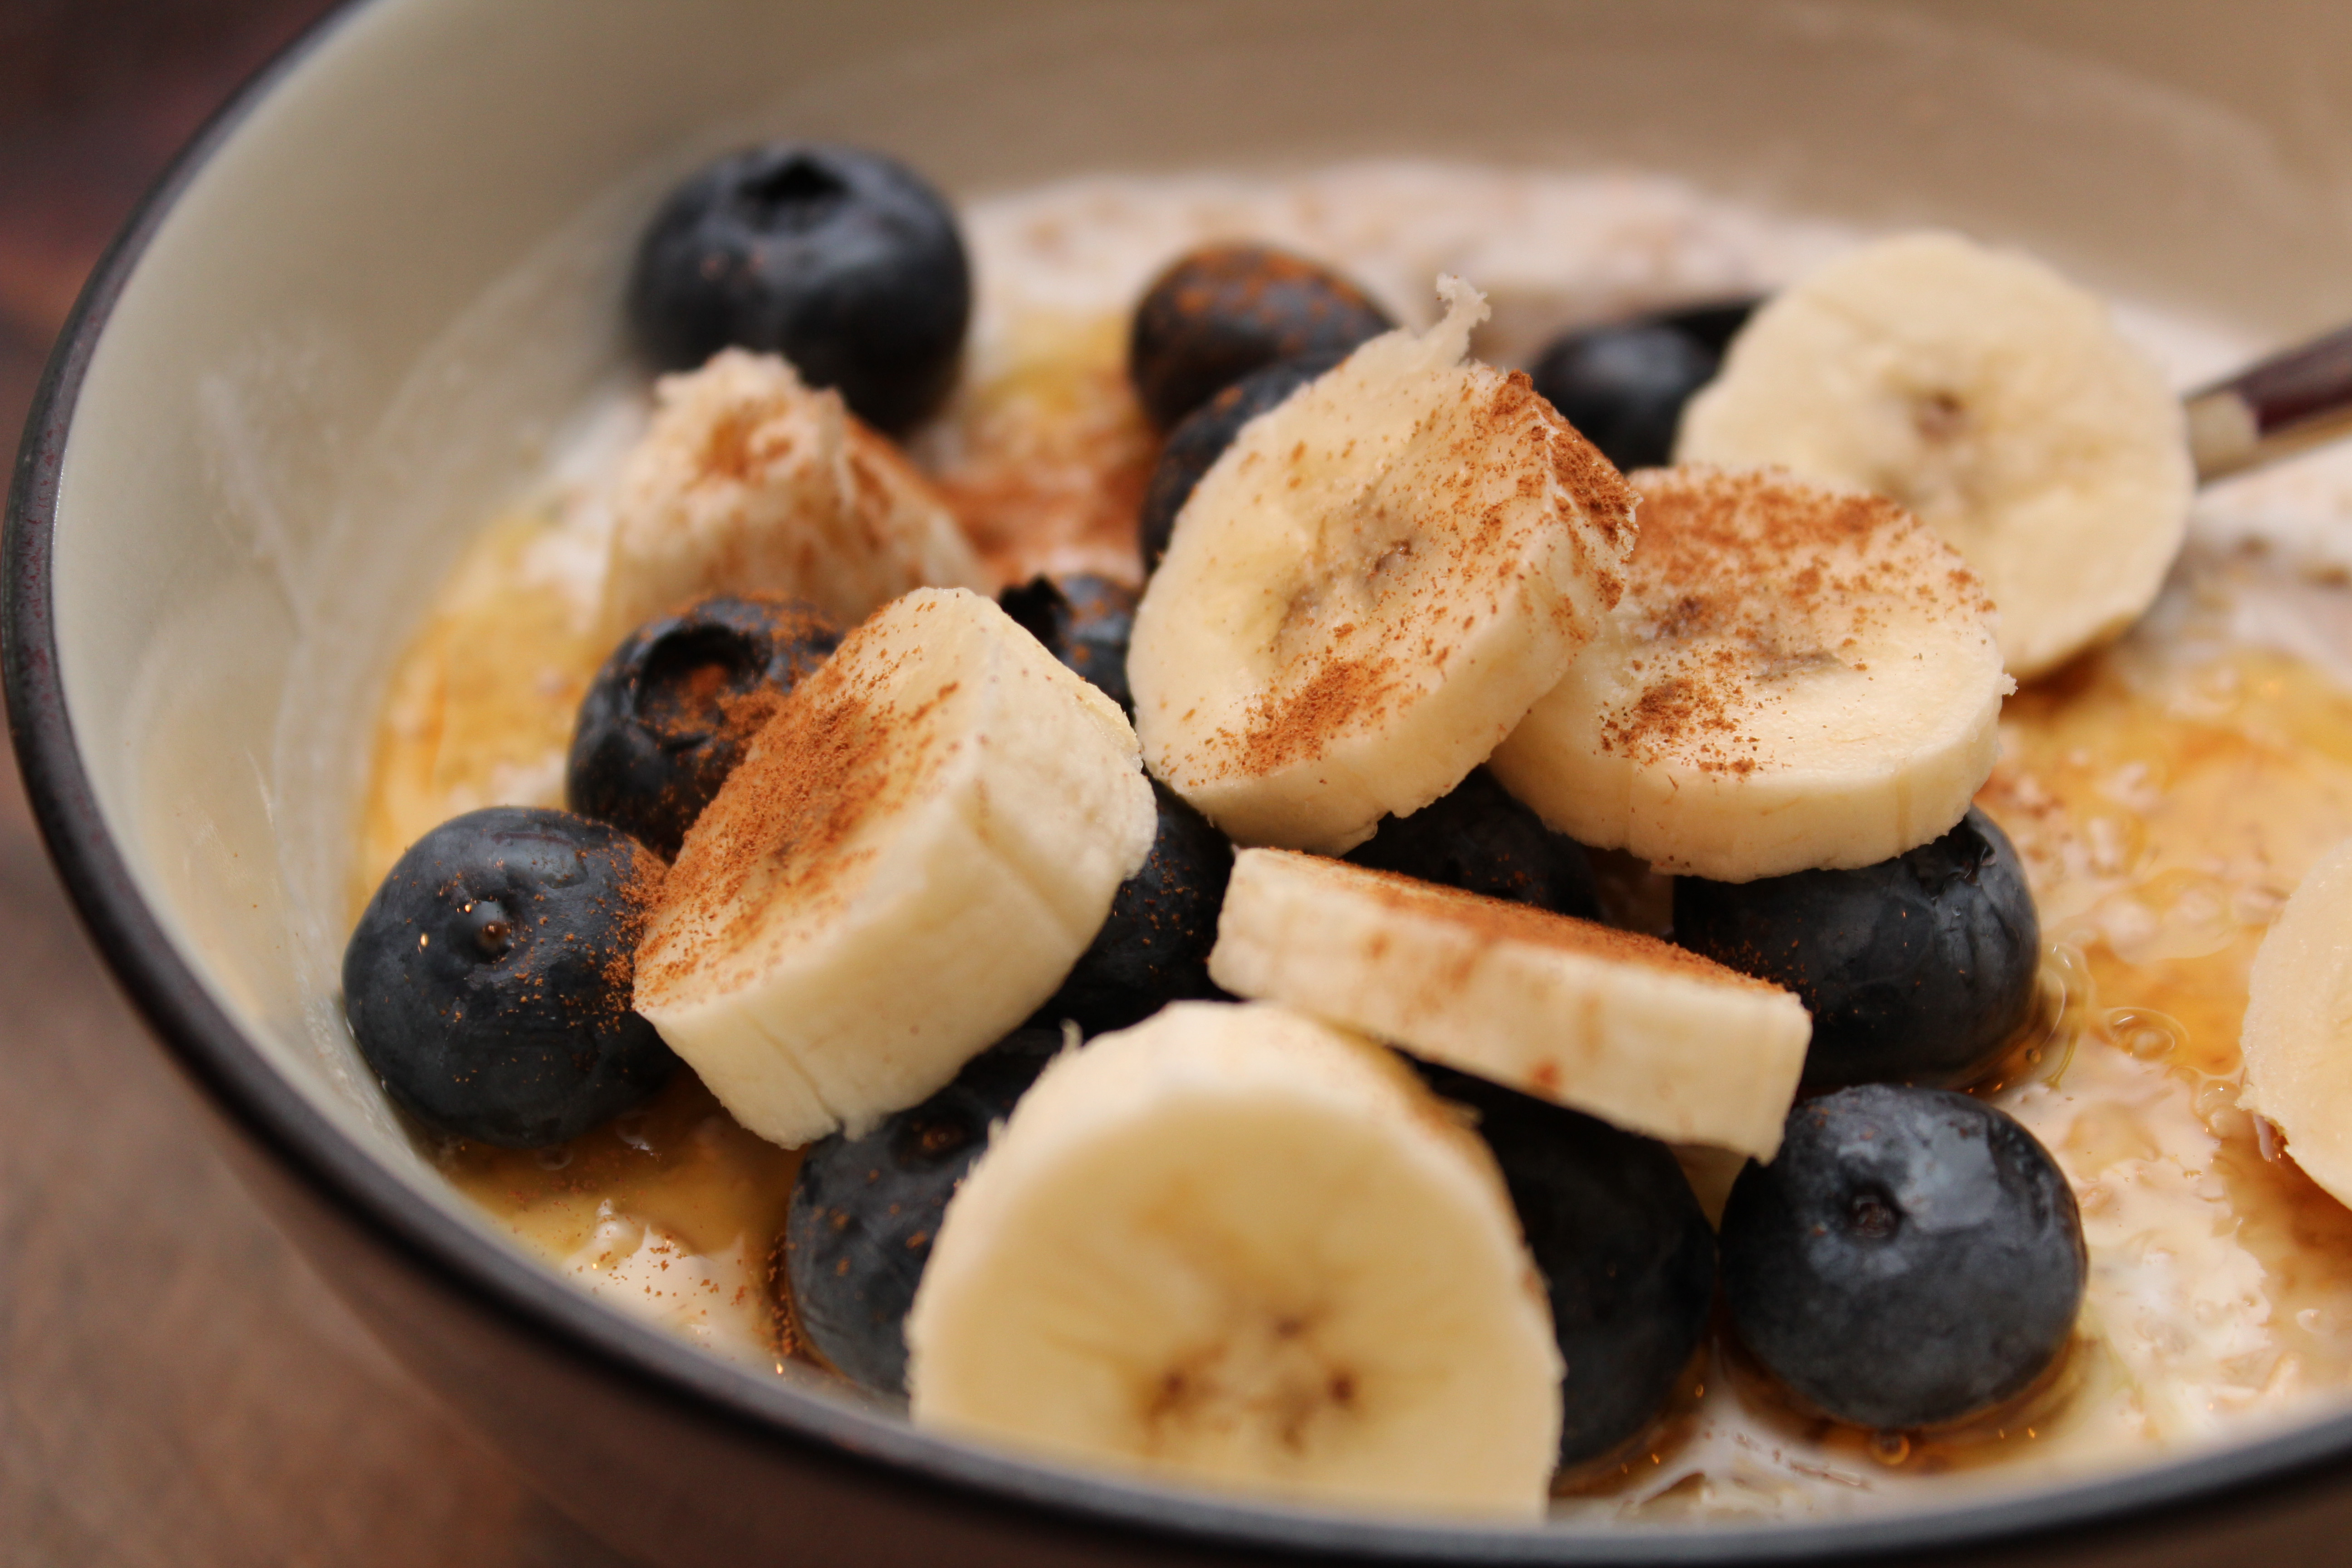 Easy Fast Healthy Breakfast  Tomorroats A Quick Simple & Healthy Breakfast Sarah s